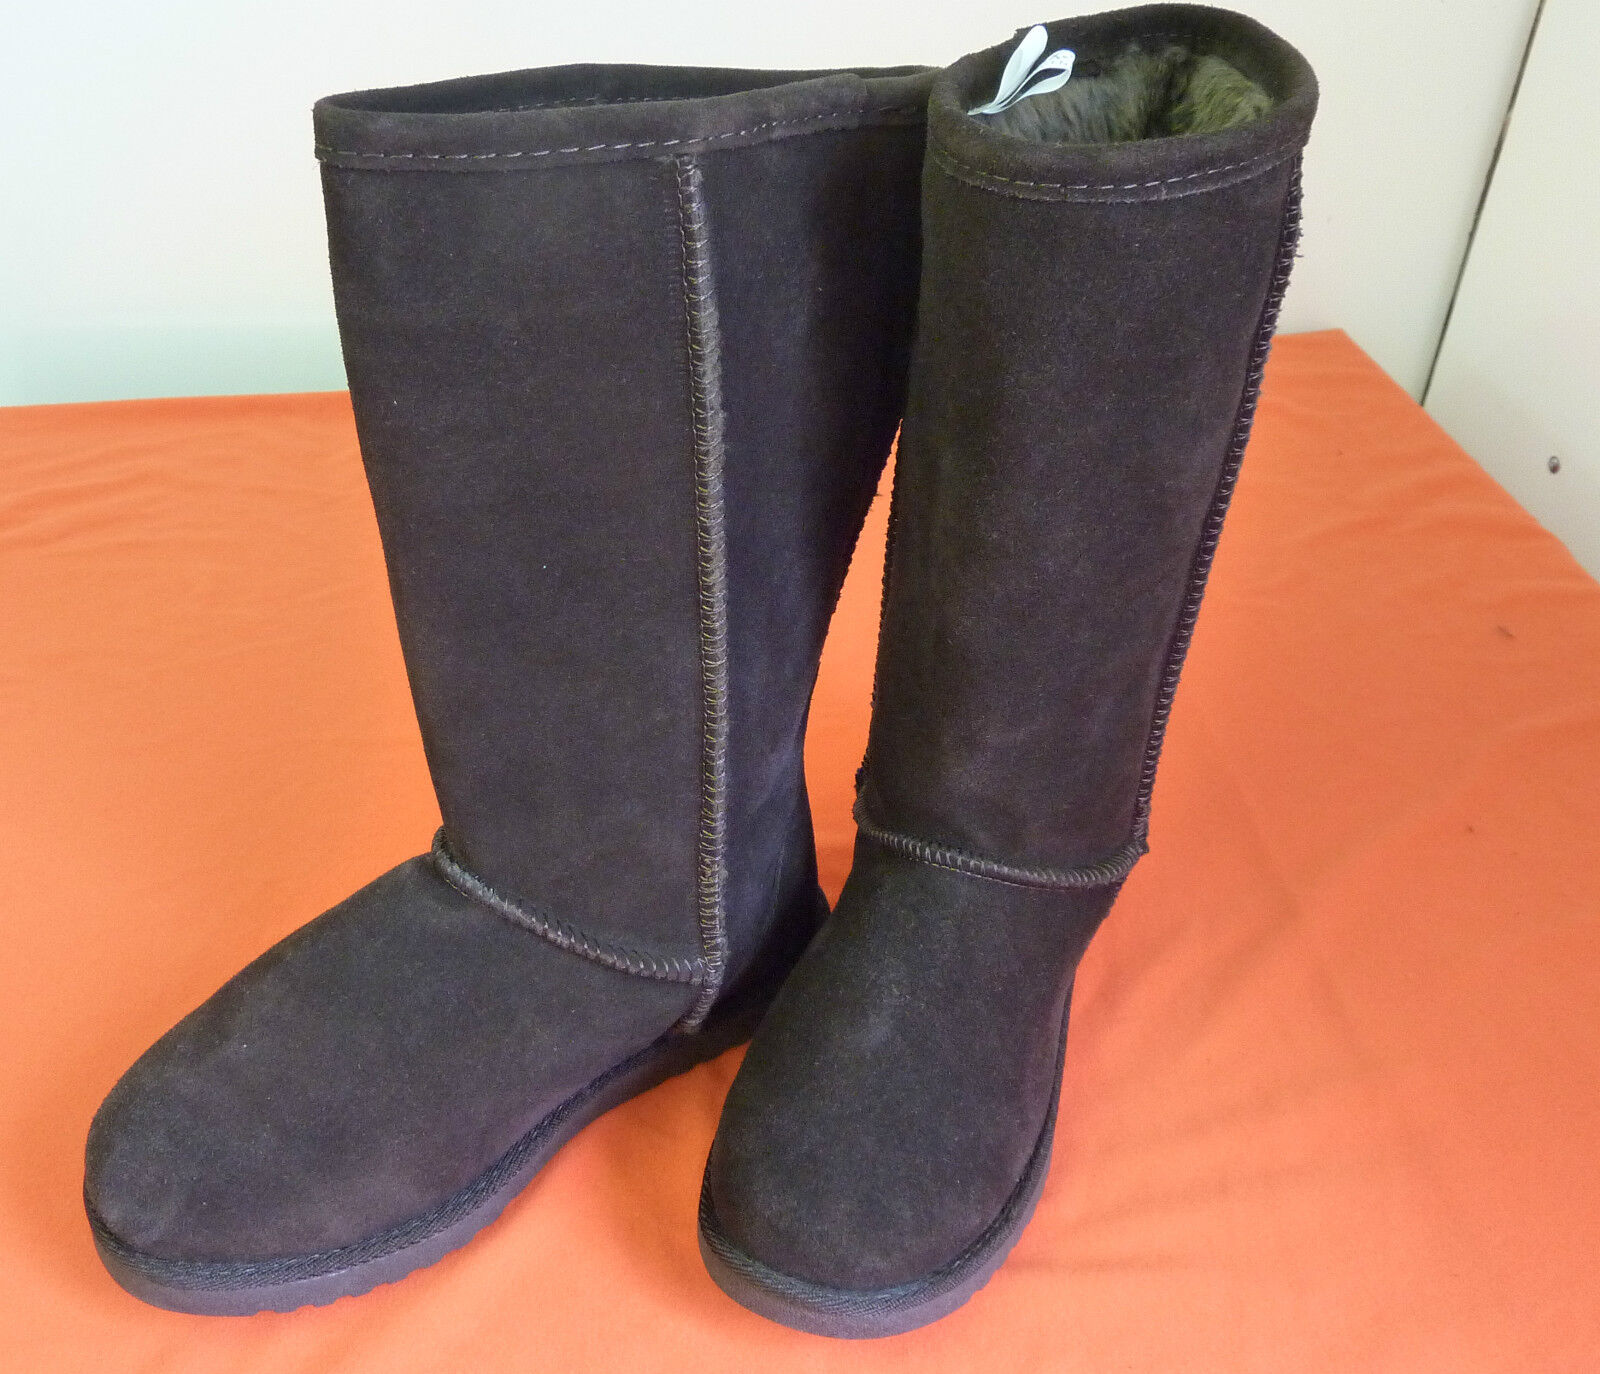 XHILARATION WOMEN'S (GENUINE SUEDE UPPER) BOOT,  WITH FAUX FUR LINING